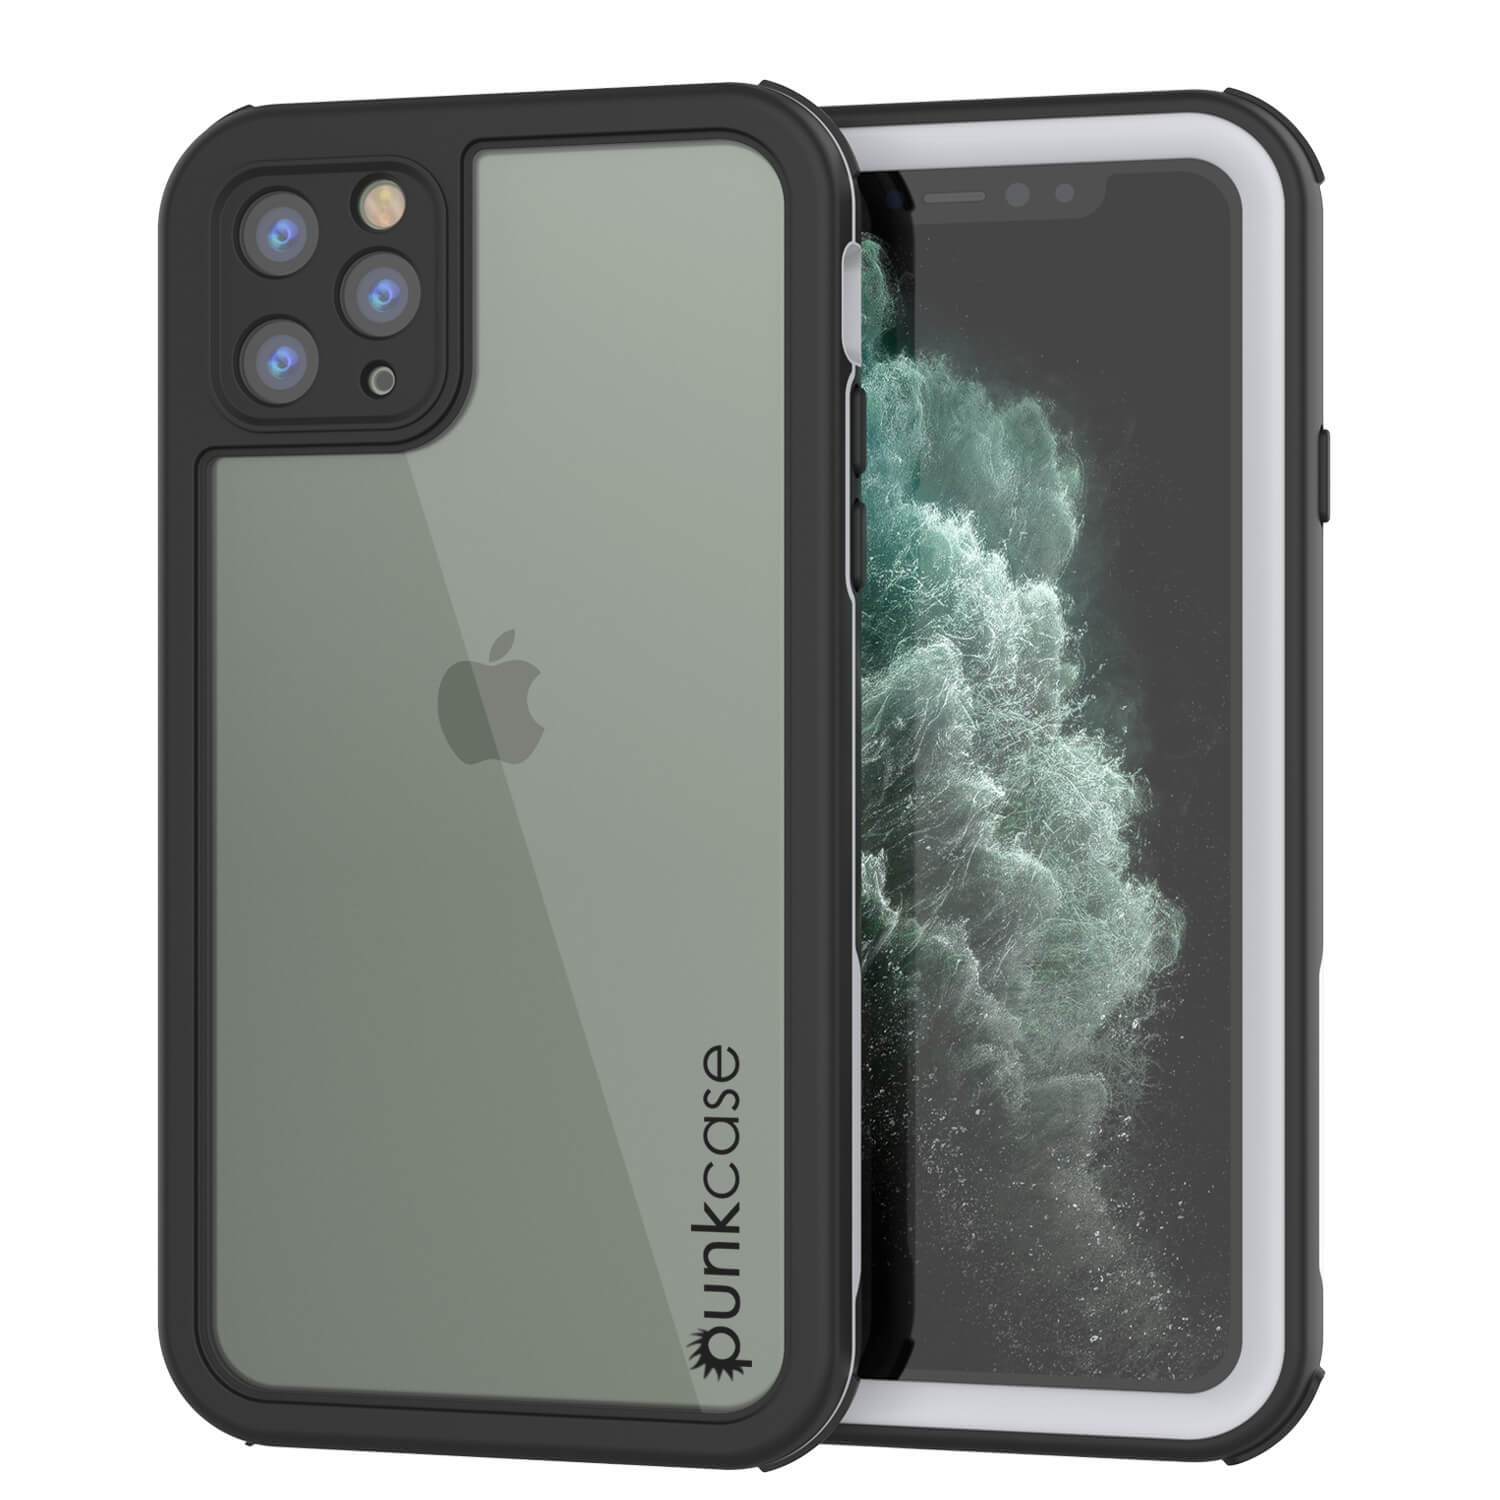 iPhone 11 Pro Max Waterproof IP68 Case, Punkcase [white] [Rapture Series]  W/Built in Screen Protector